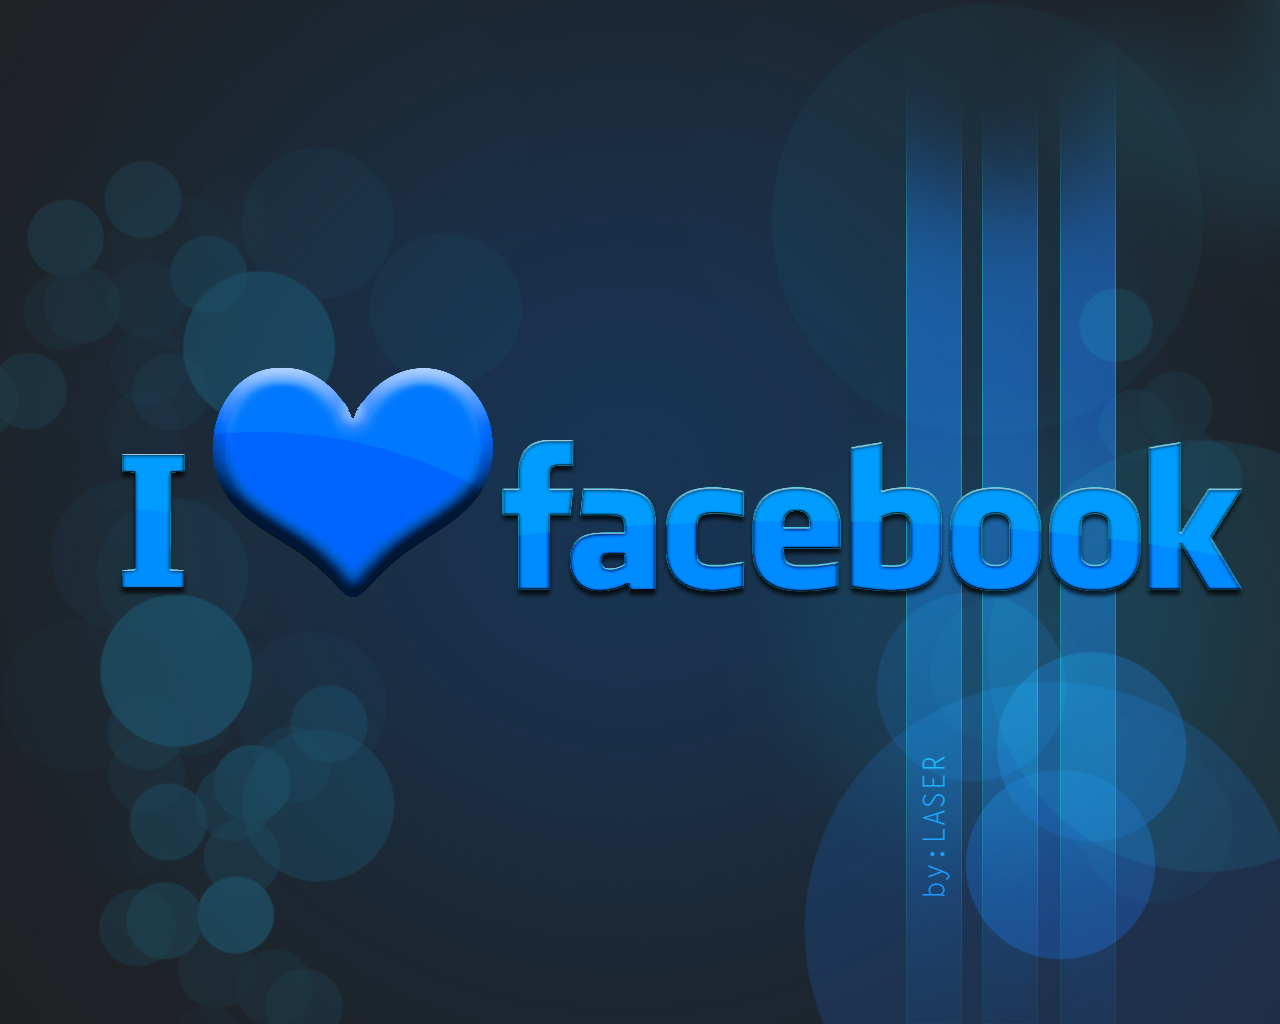 facebook wallpaper free hd computer wallpaper free